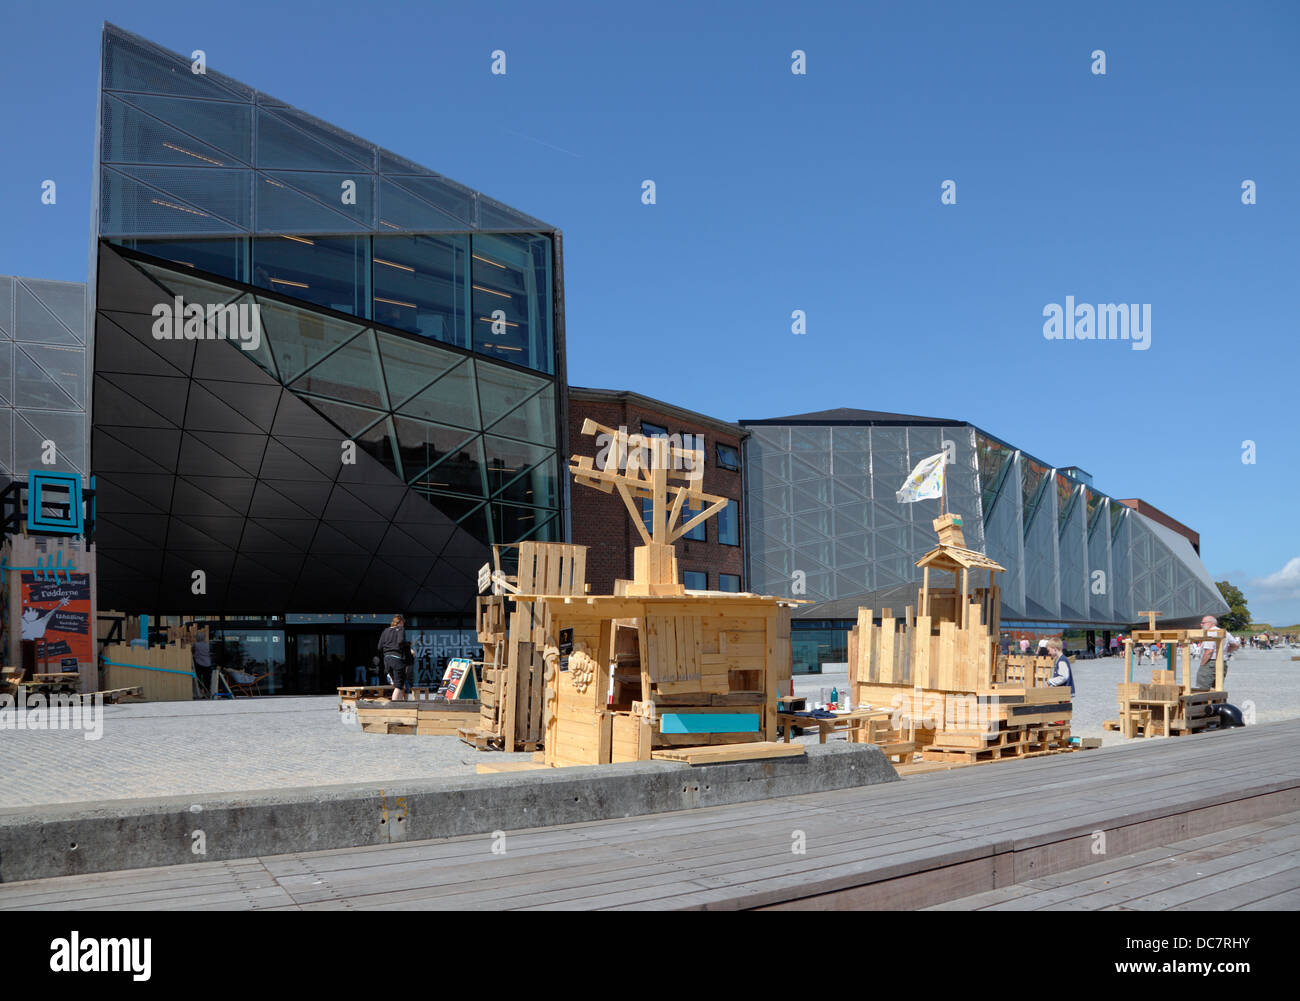 Areas and buildings of the old shipyard in Elsinore have turned into The Culture Yard in Elsinore, Denmark. Adventure - Stock Image